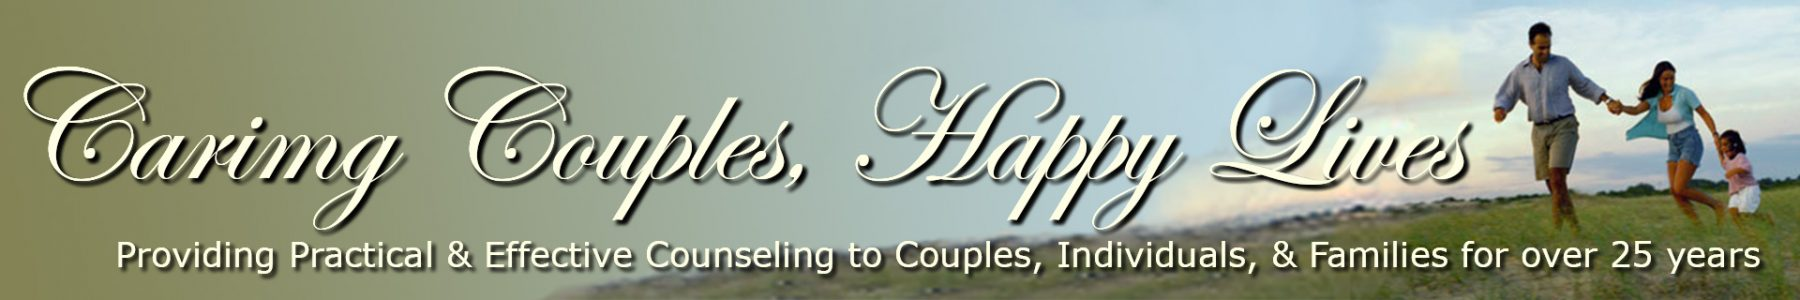 Caring Couples, Happy Lives Banner